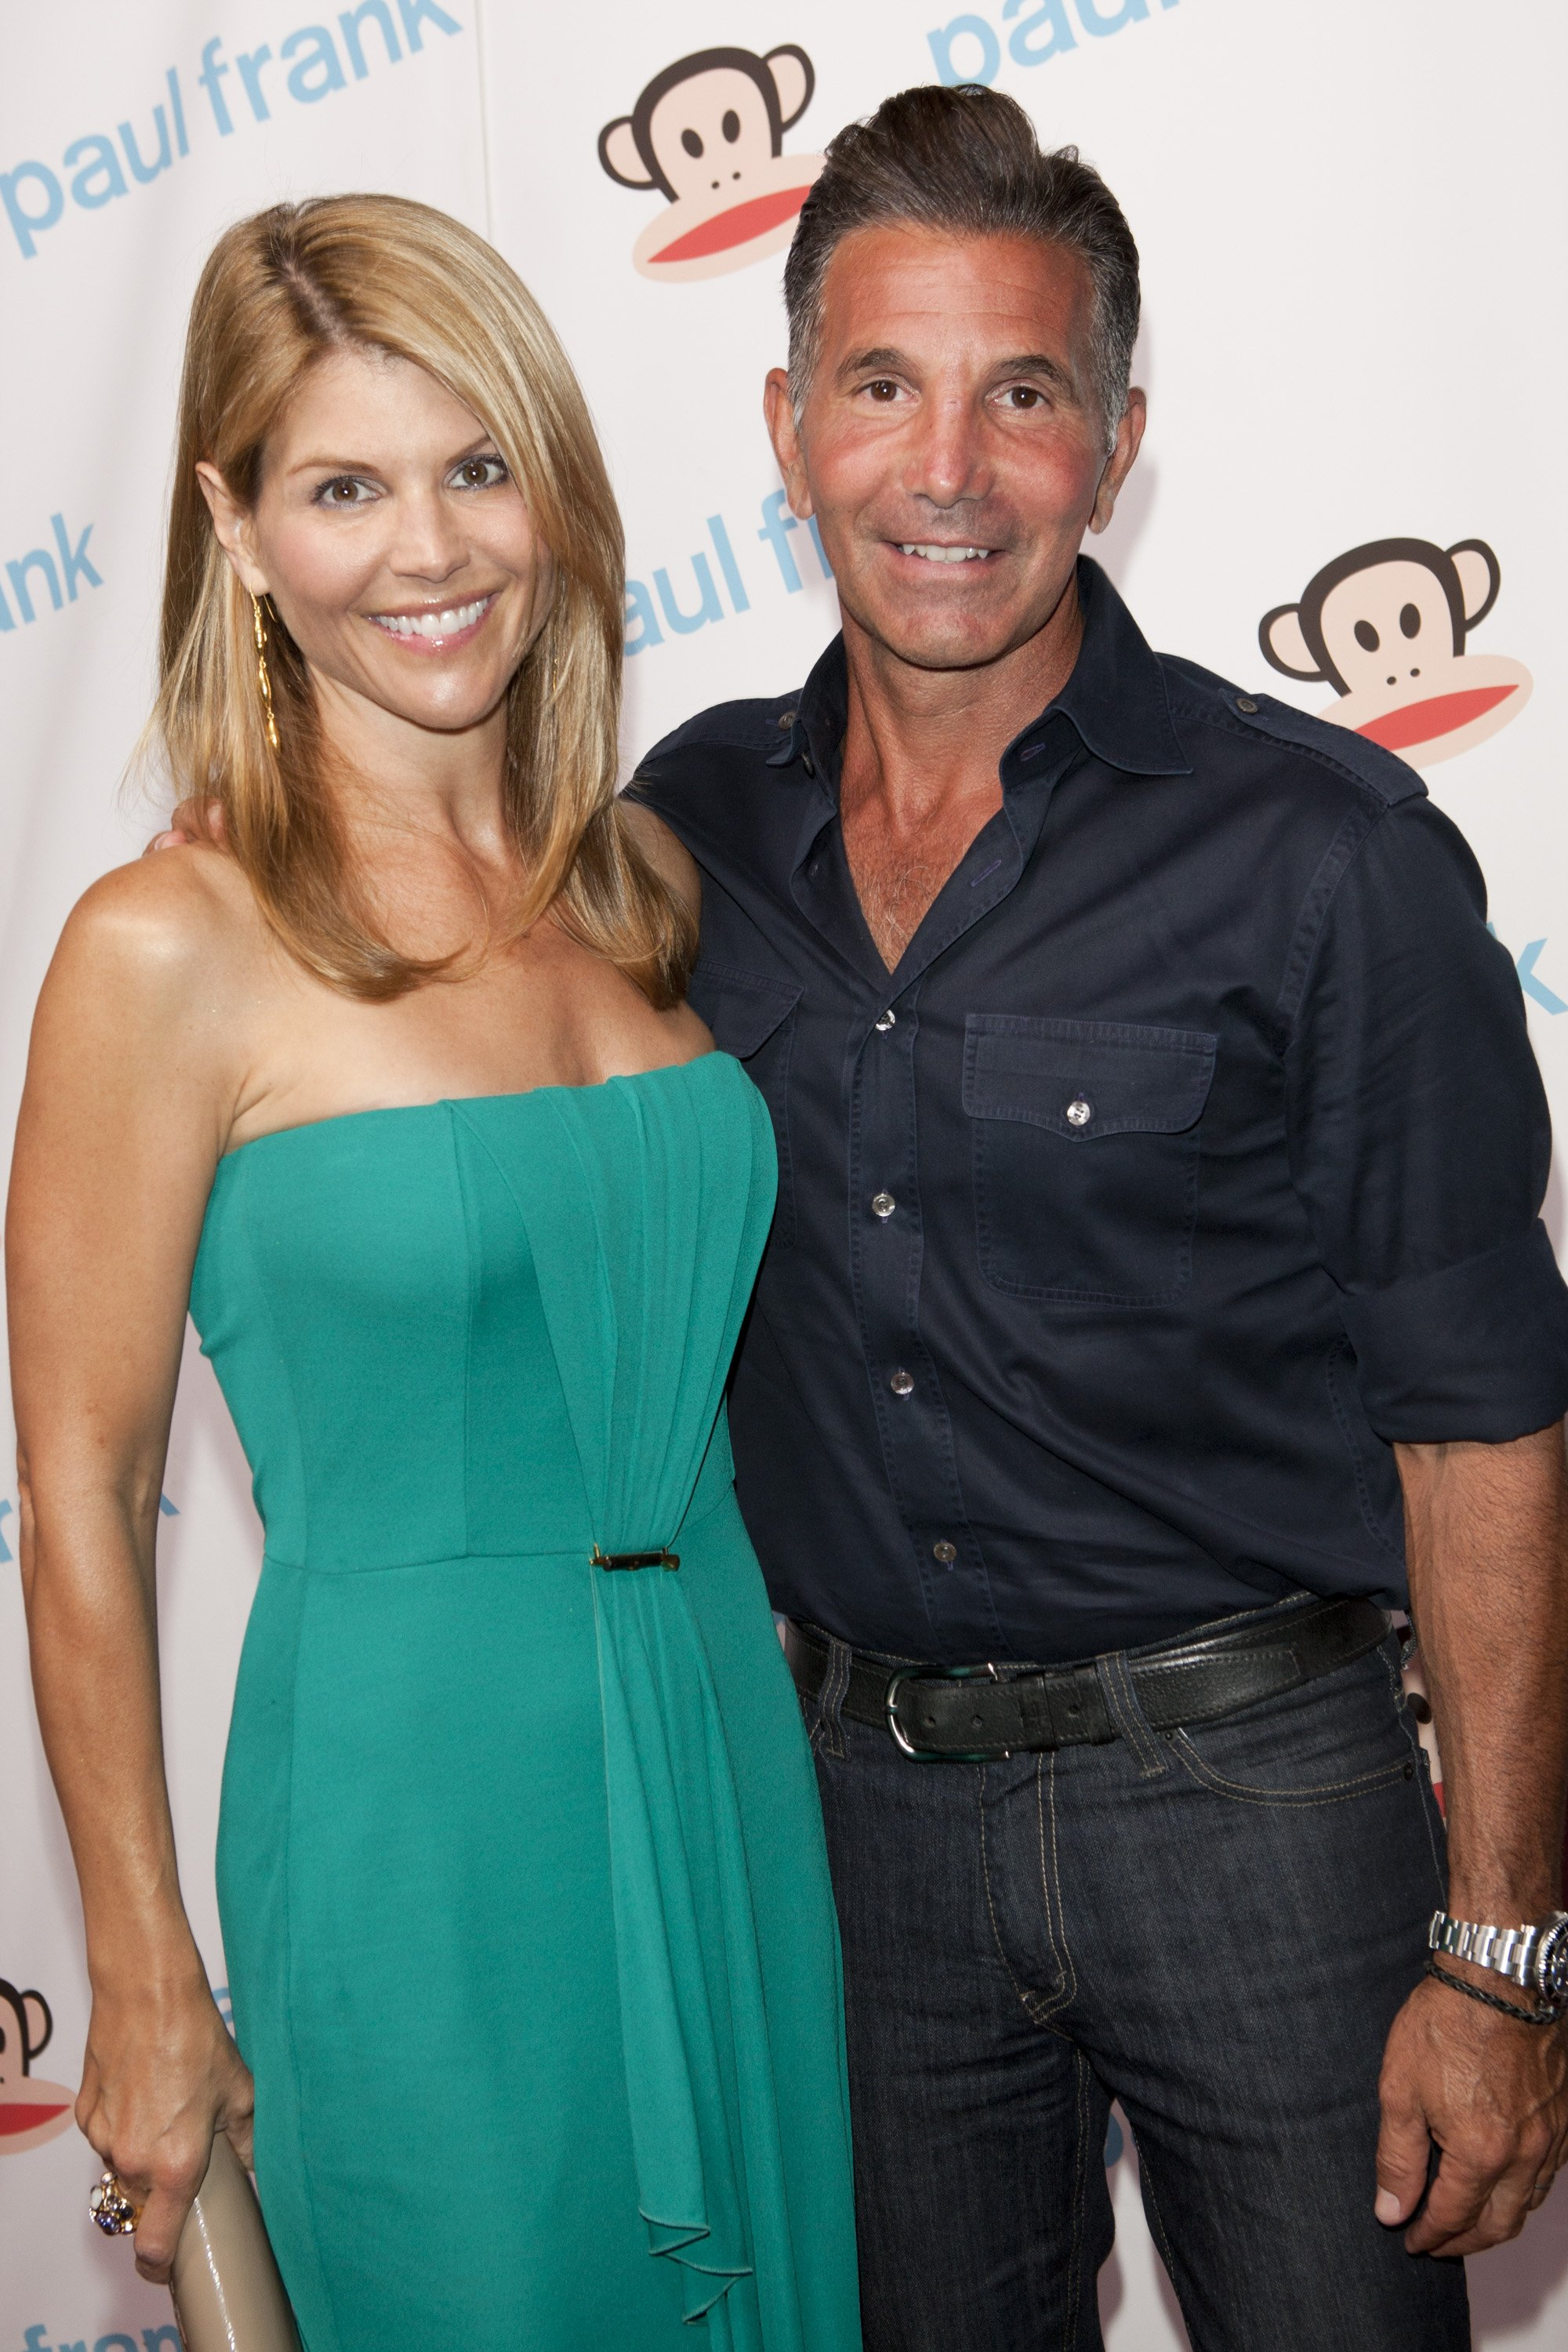 Lori Loughlin and husband Mossimo Giannulli. | Source: Getty Images